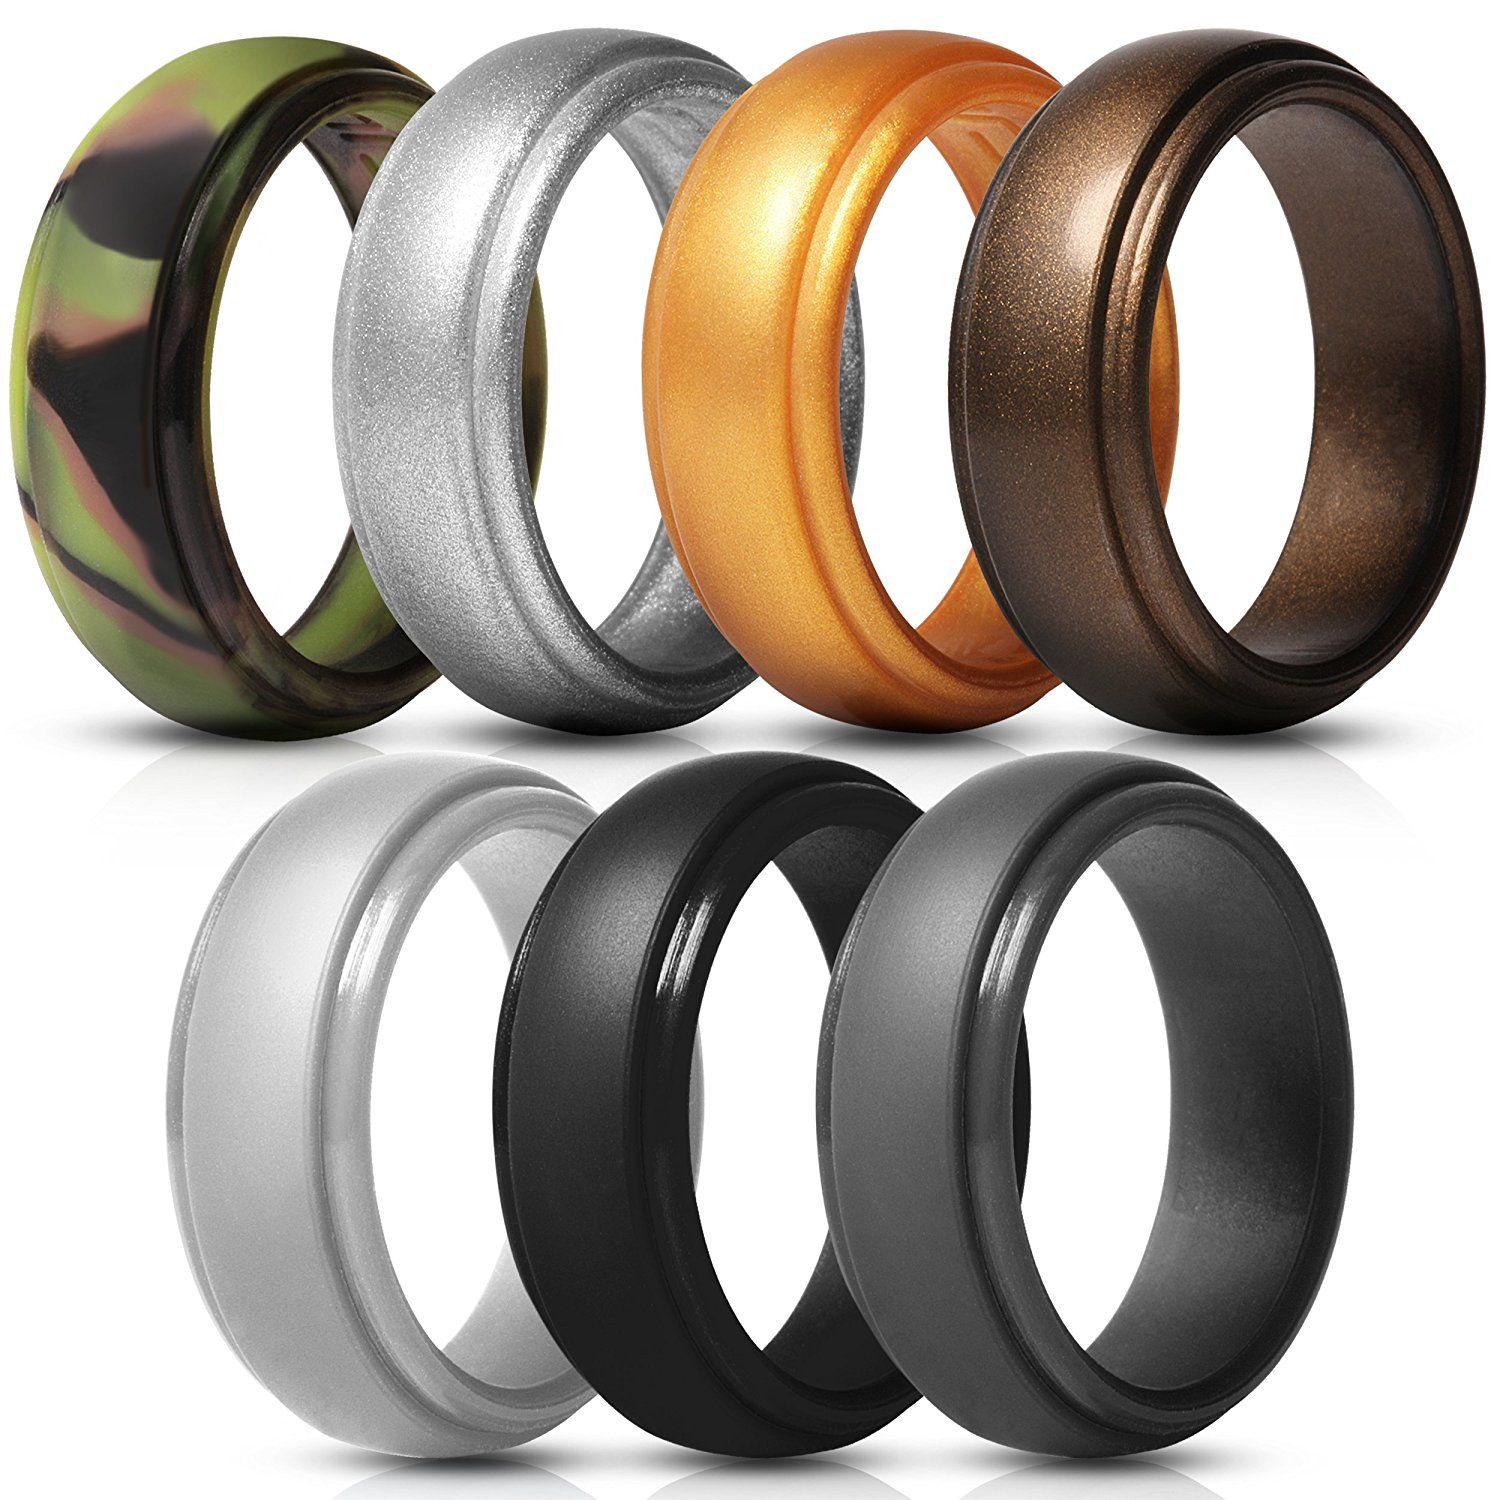 Size 6 5 7 Rubber Wedding Band Silicone Wedding Band Mens Rubber Rings Wedding